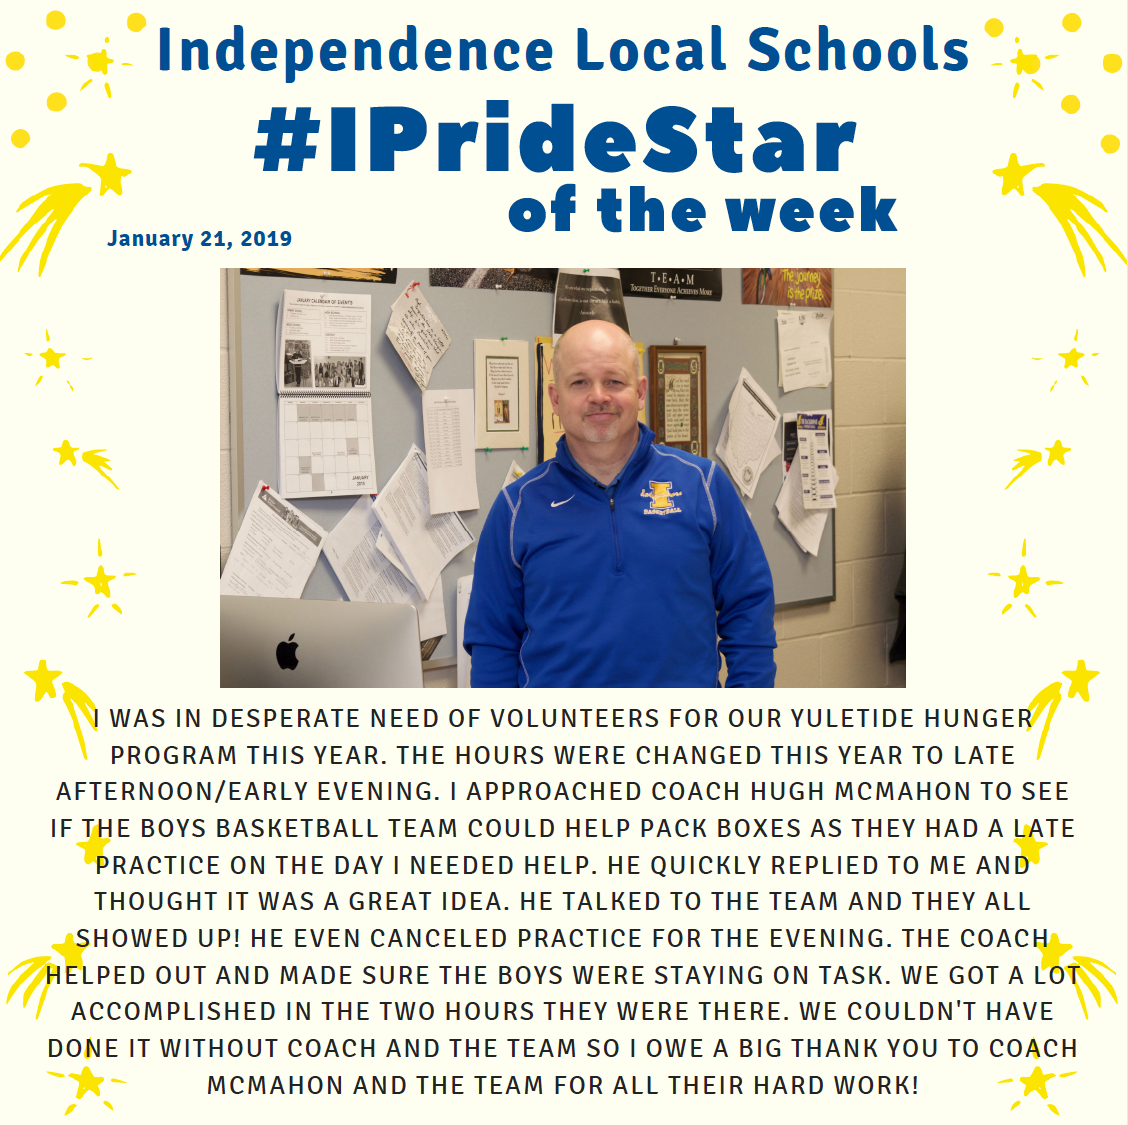 Hugh McMahon, IPride Star of the Week